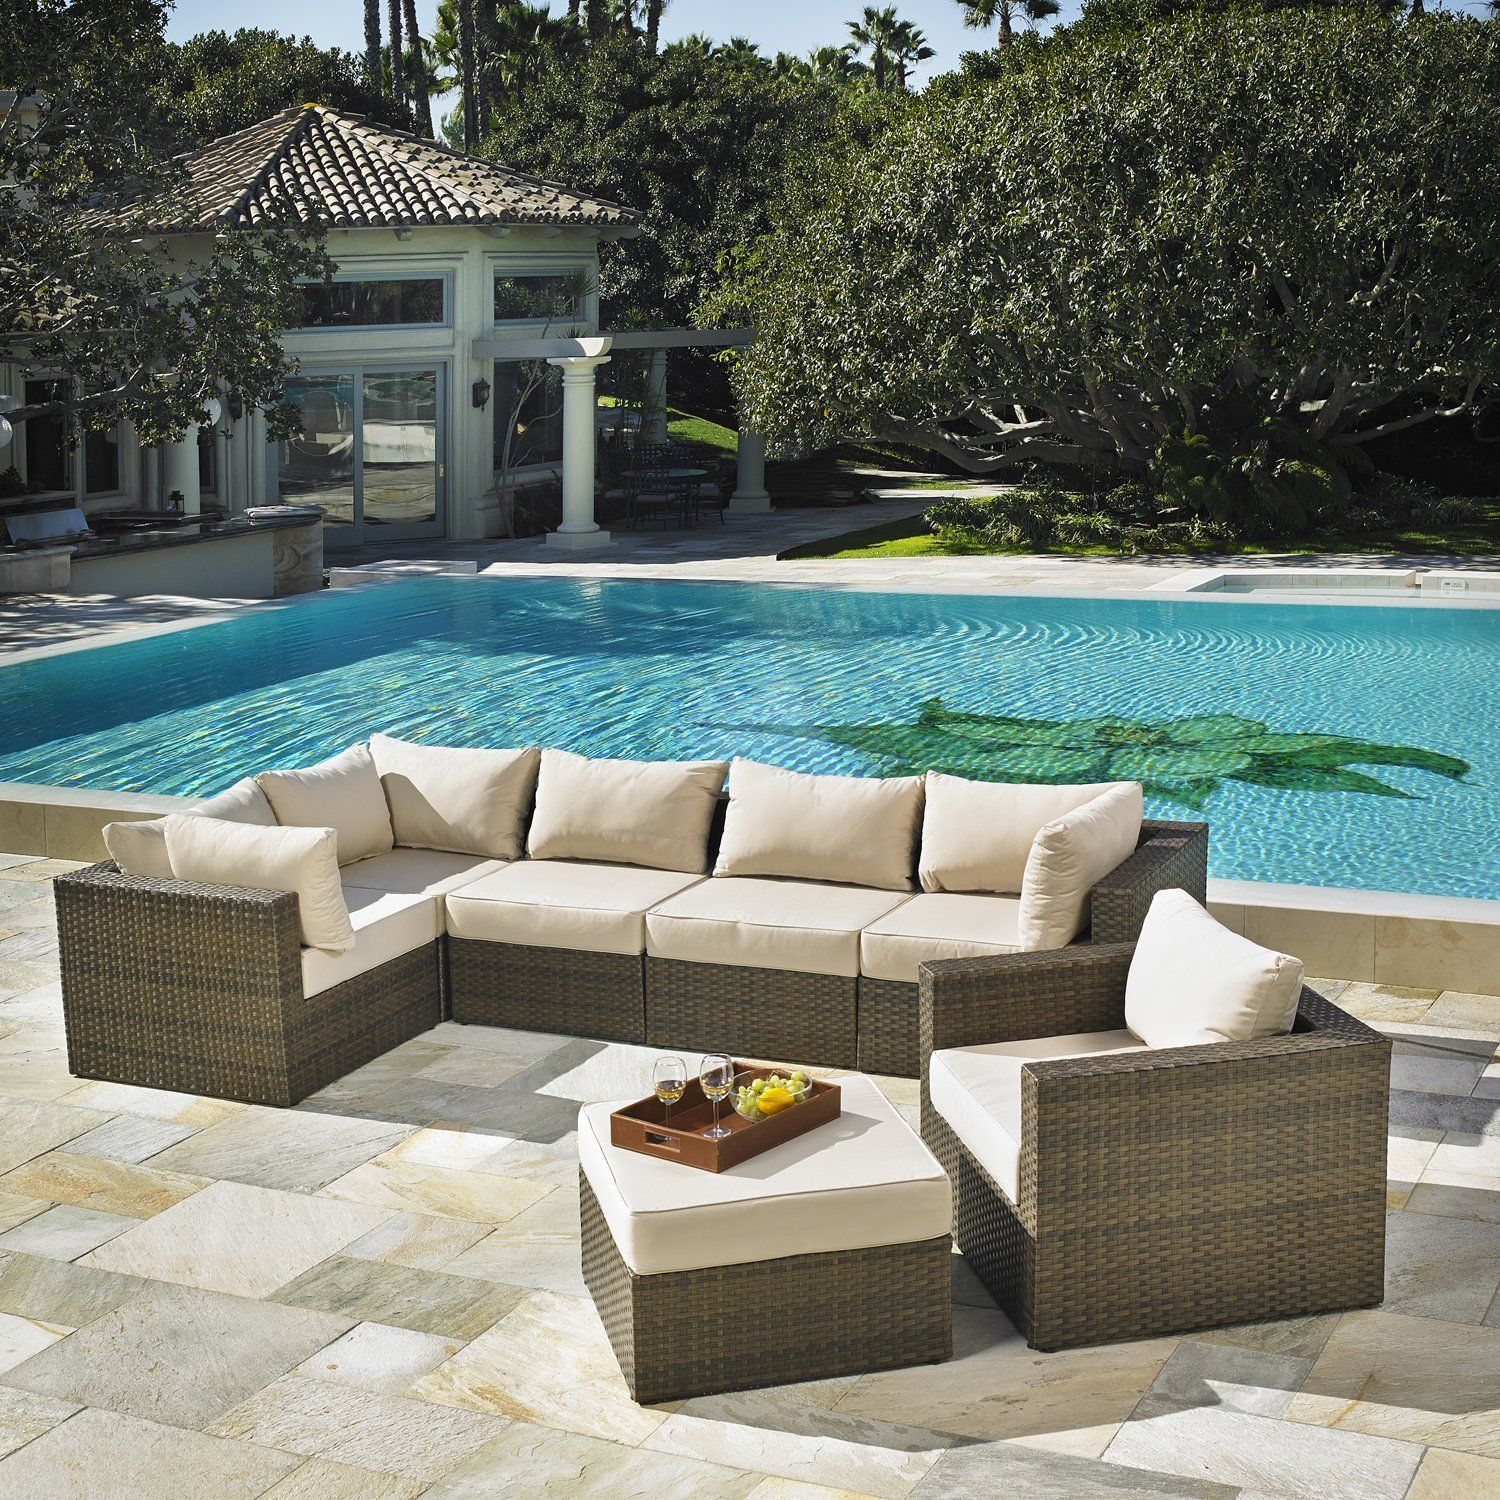 Delicieux Amazon.com : Mission Hills San Clemente 7 Piece Deep Seating Patio Set :  Patio, Lawn U0026 Garden